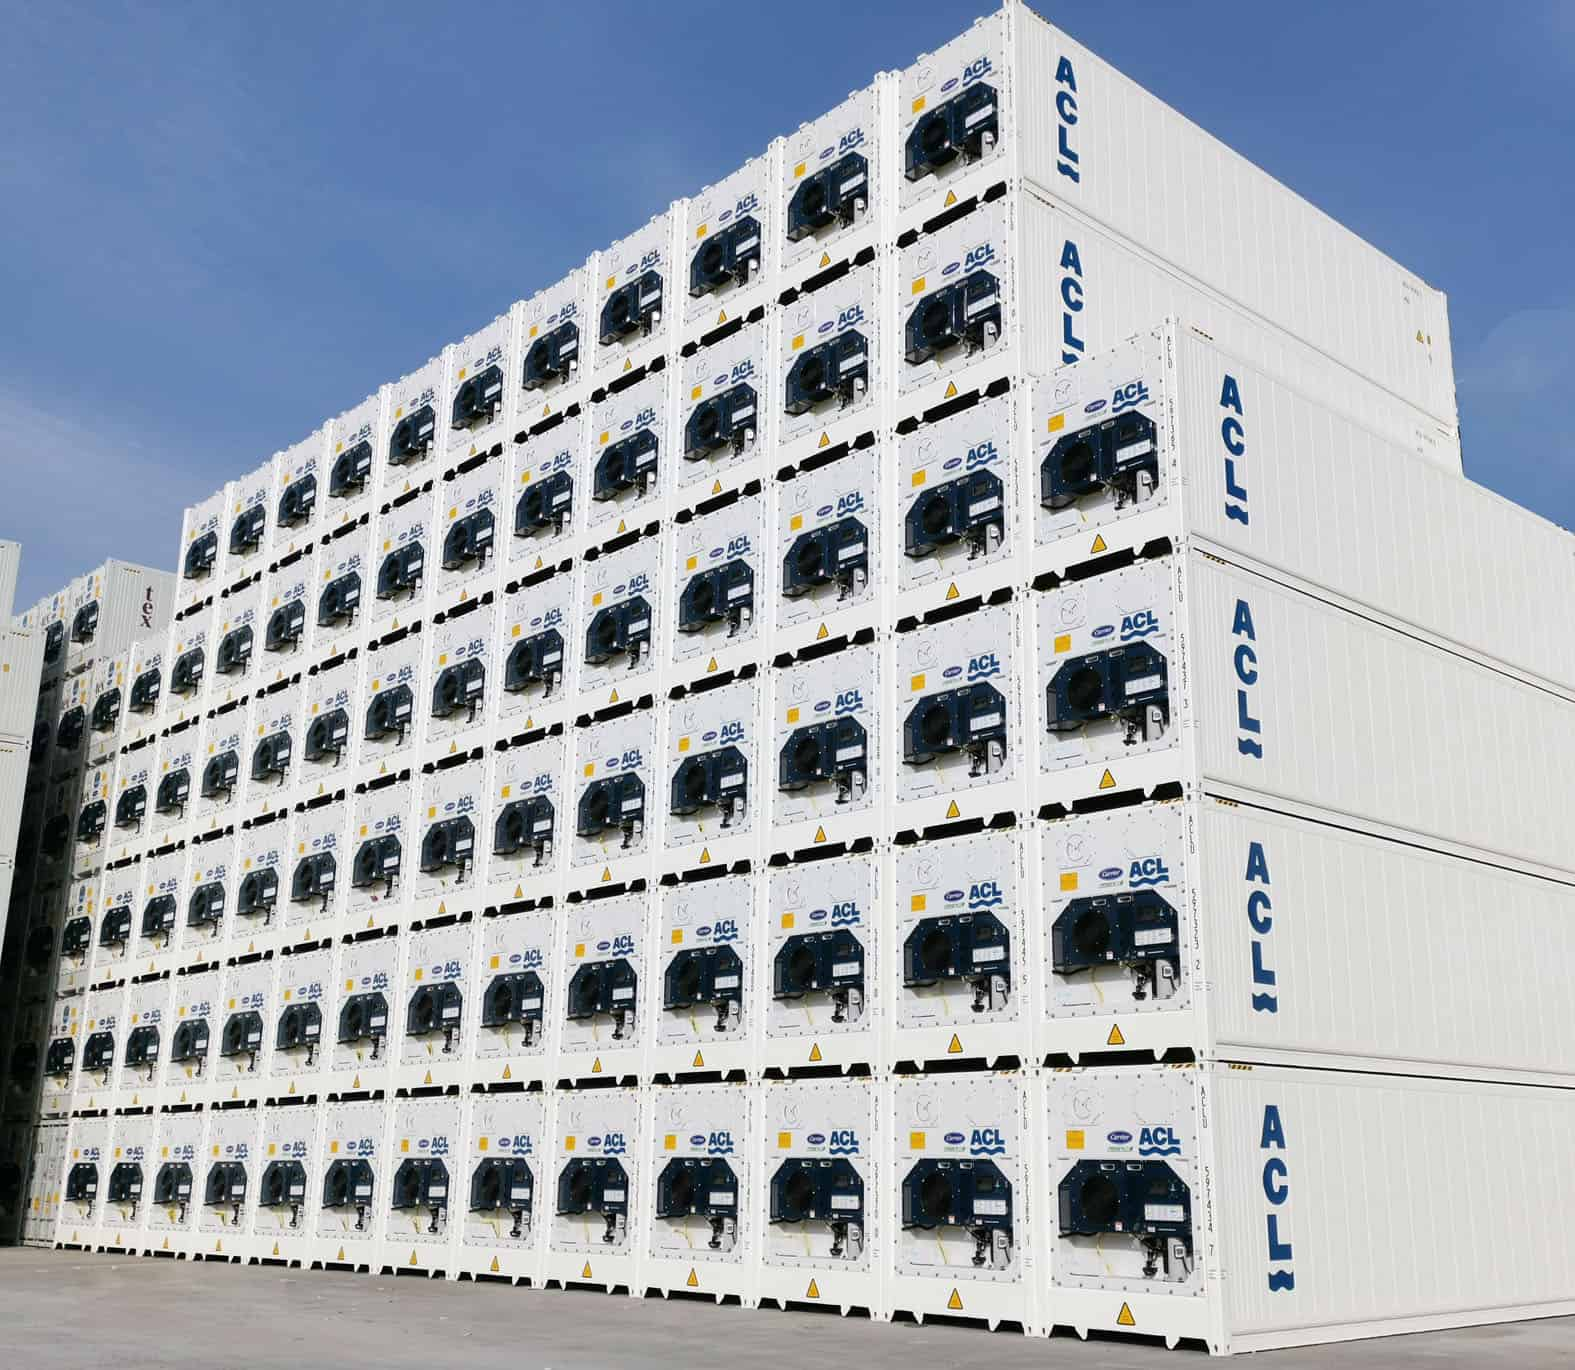 Atlantic Container Line adds 150 PrimeLINE reefer containers